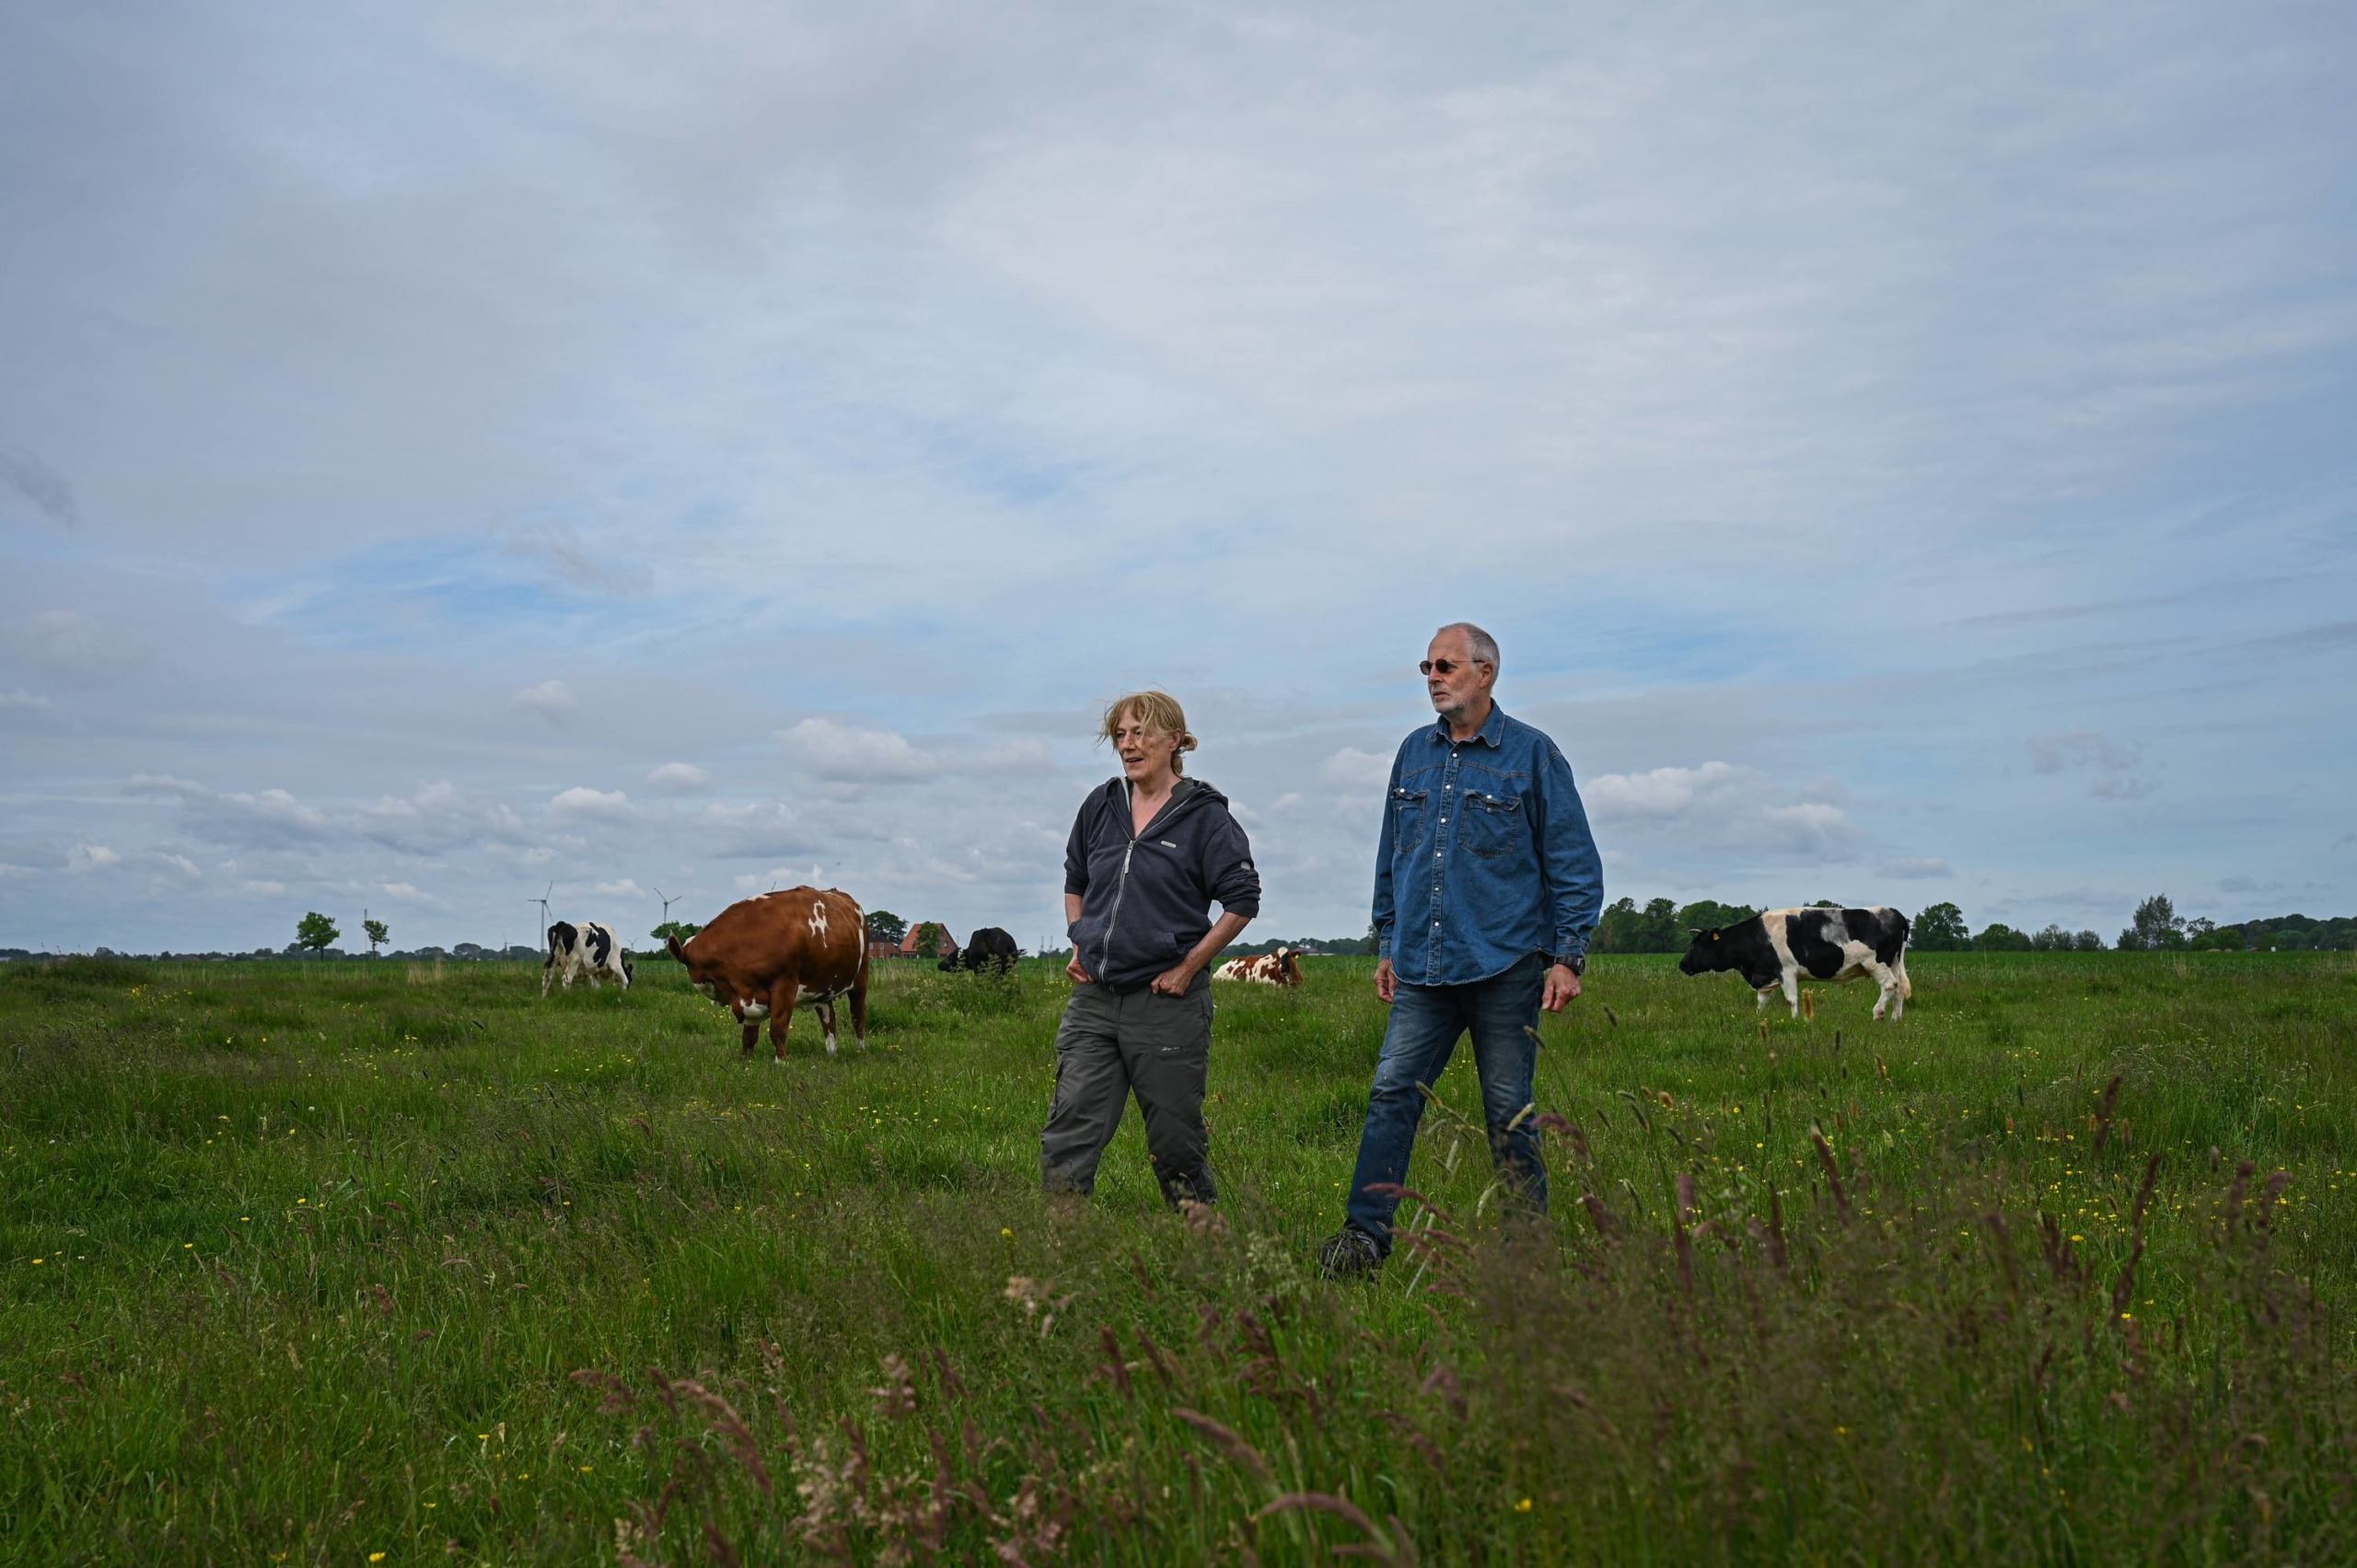 Karin Muck and Jan Gerdes visit the cows at Hof Butenland, an ex-dairy farm that's become a farm animal retirement home and symbol of veganism and coexistence of people and animals.   LENA MUCHA / THE NEW YORK TIMES